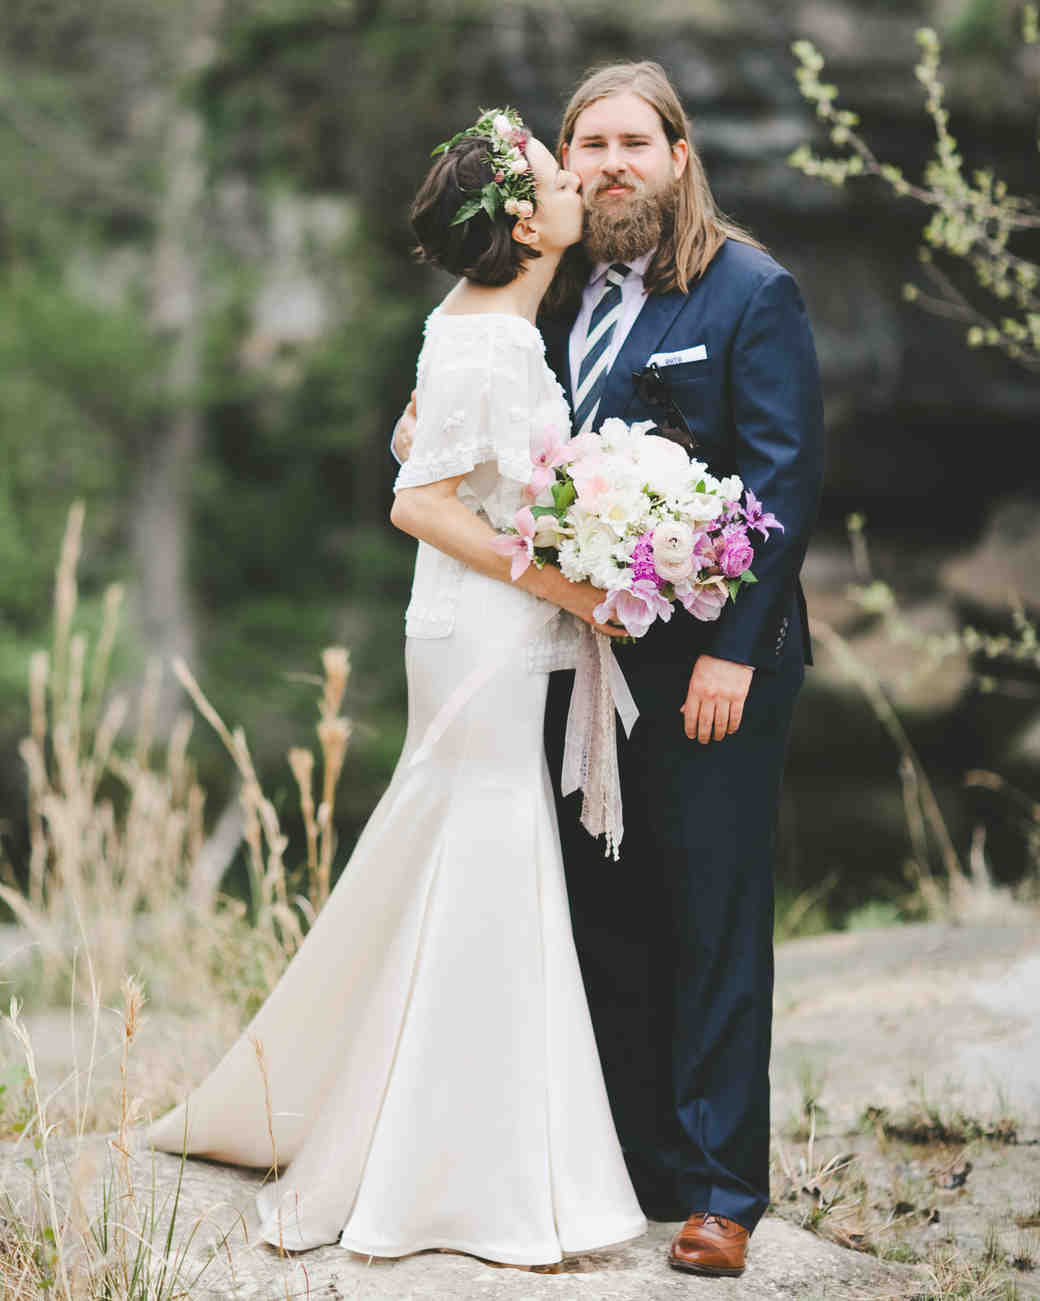 heather-tibaut-wedding-kiss-0314.jpg